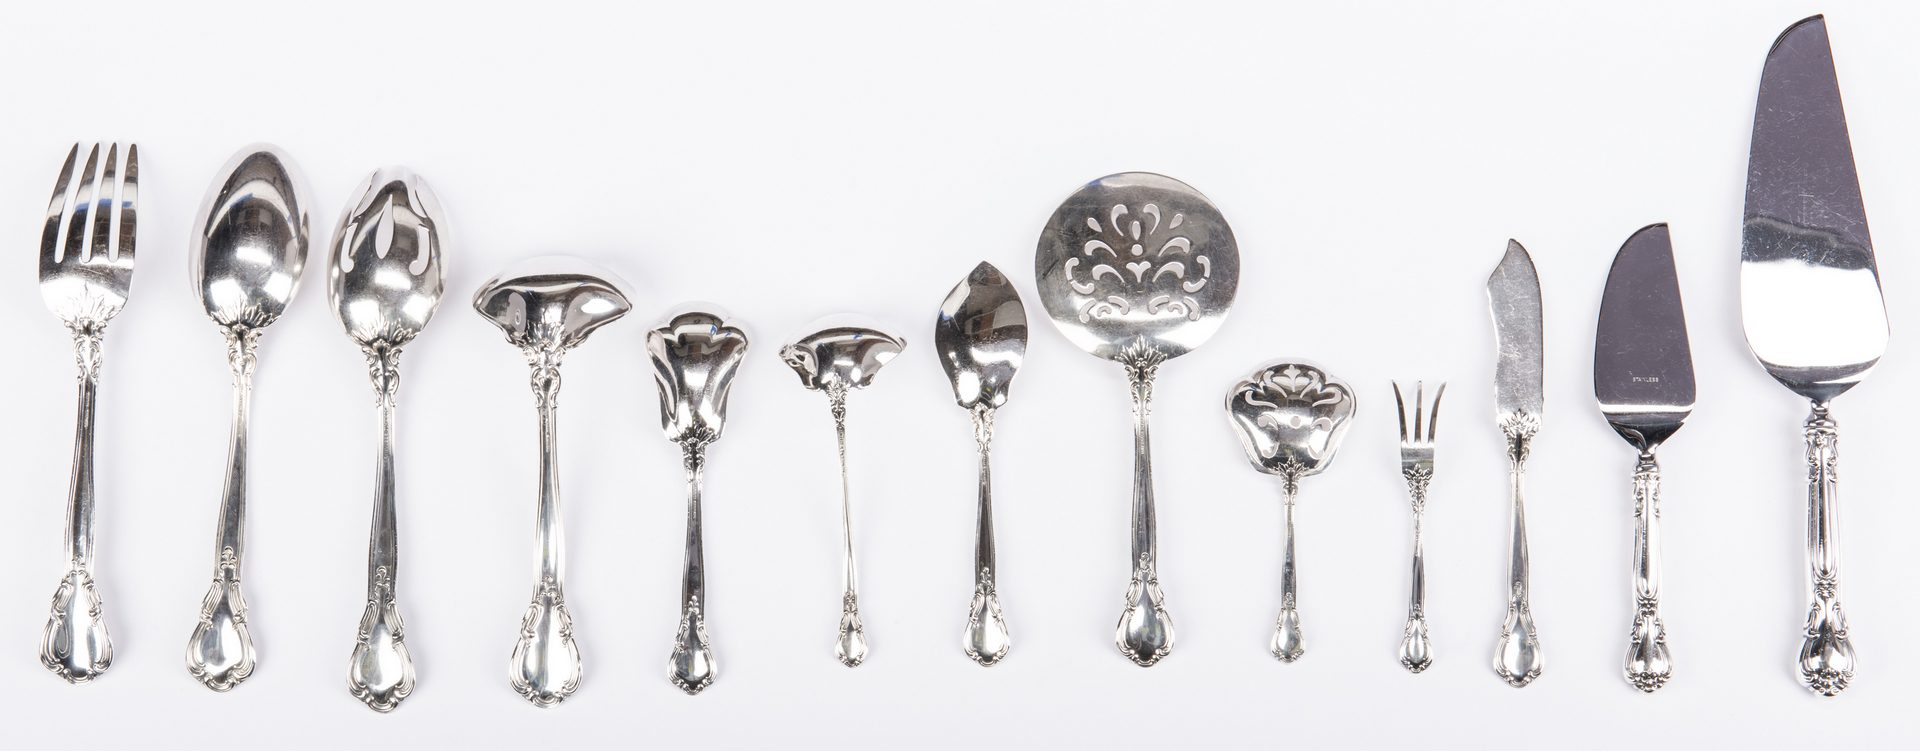 Lot 70: 132 Piece Gorham Chantilly Sterling Flatware